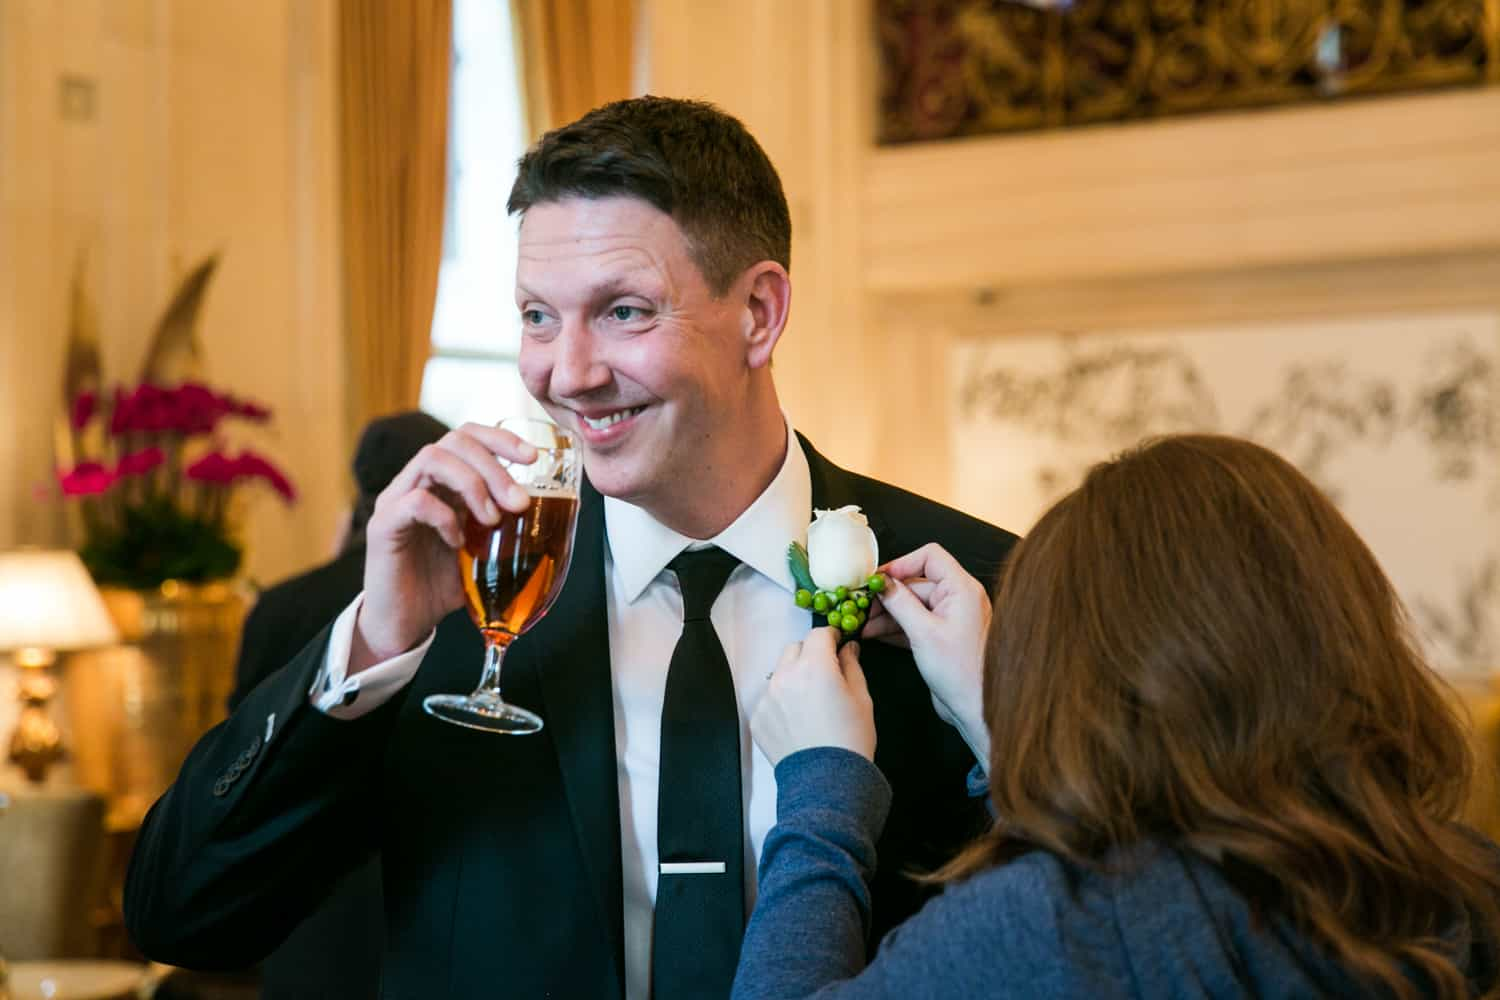 Groom drinking glass of beer while having boutonniere put on